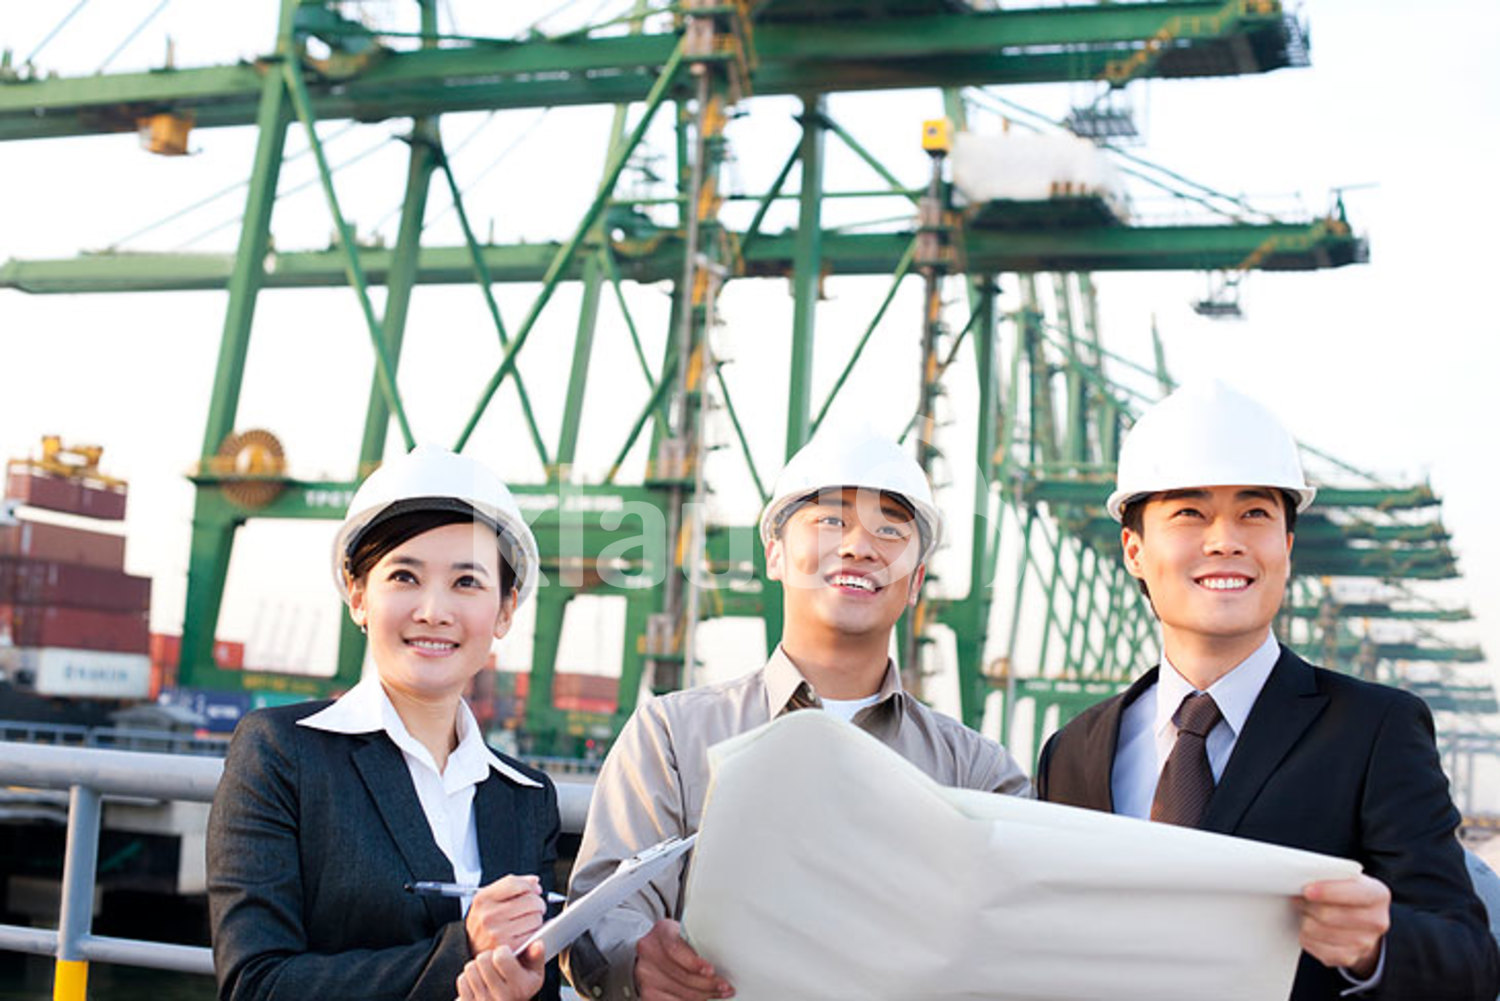 Chinese shipping industry professionals looking over blueprints in a row